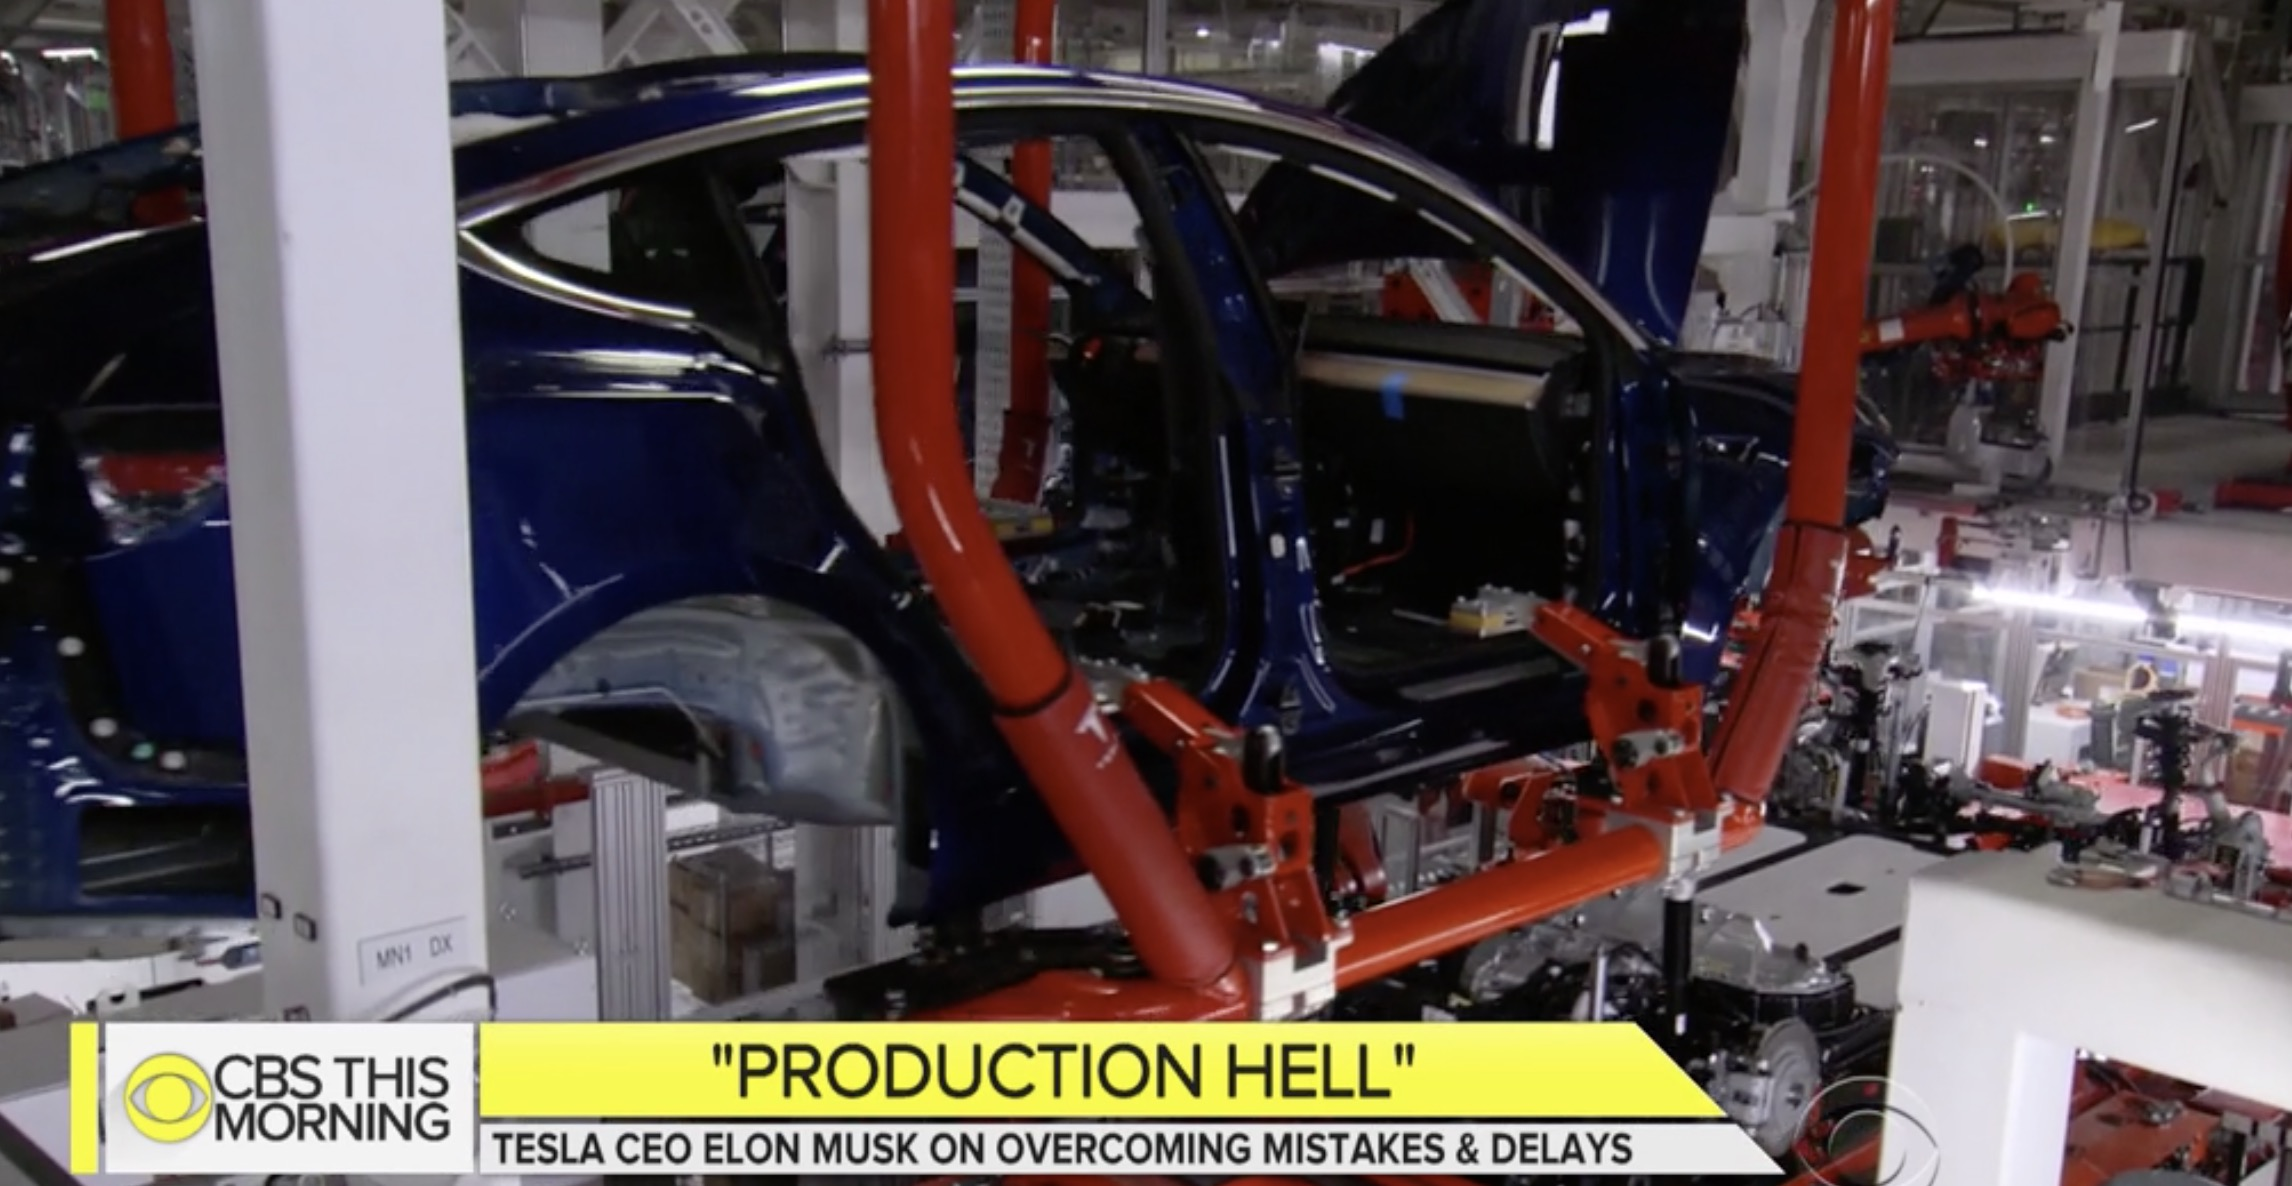 a1c4aab4a17fd Here are a few images from the production line that were shown in the  interview embedded below